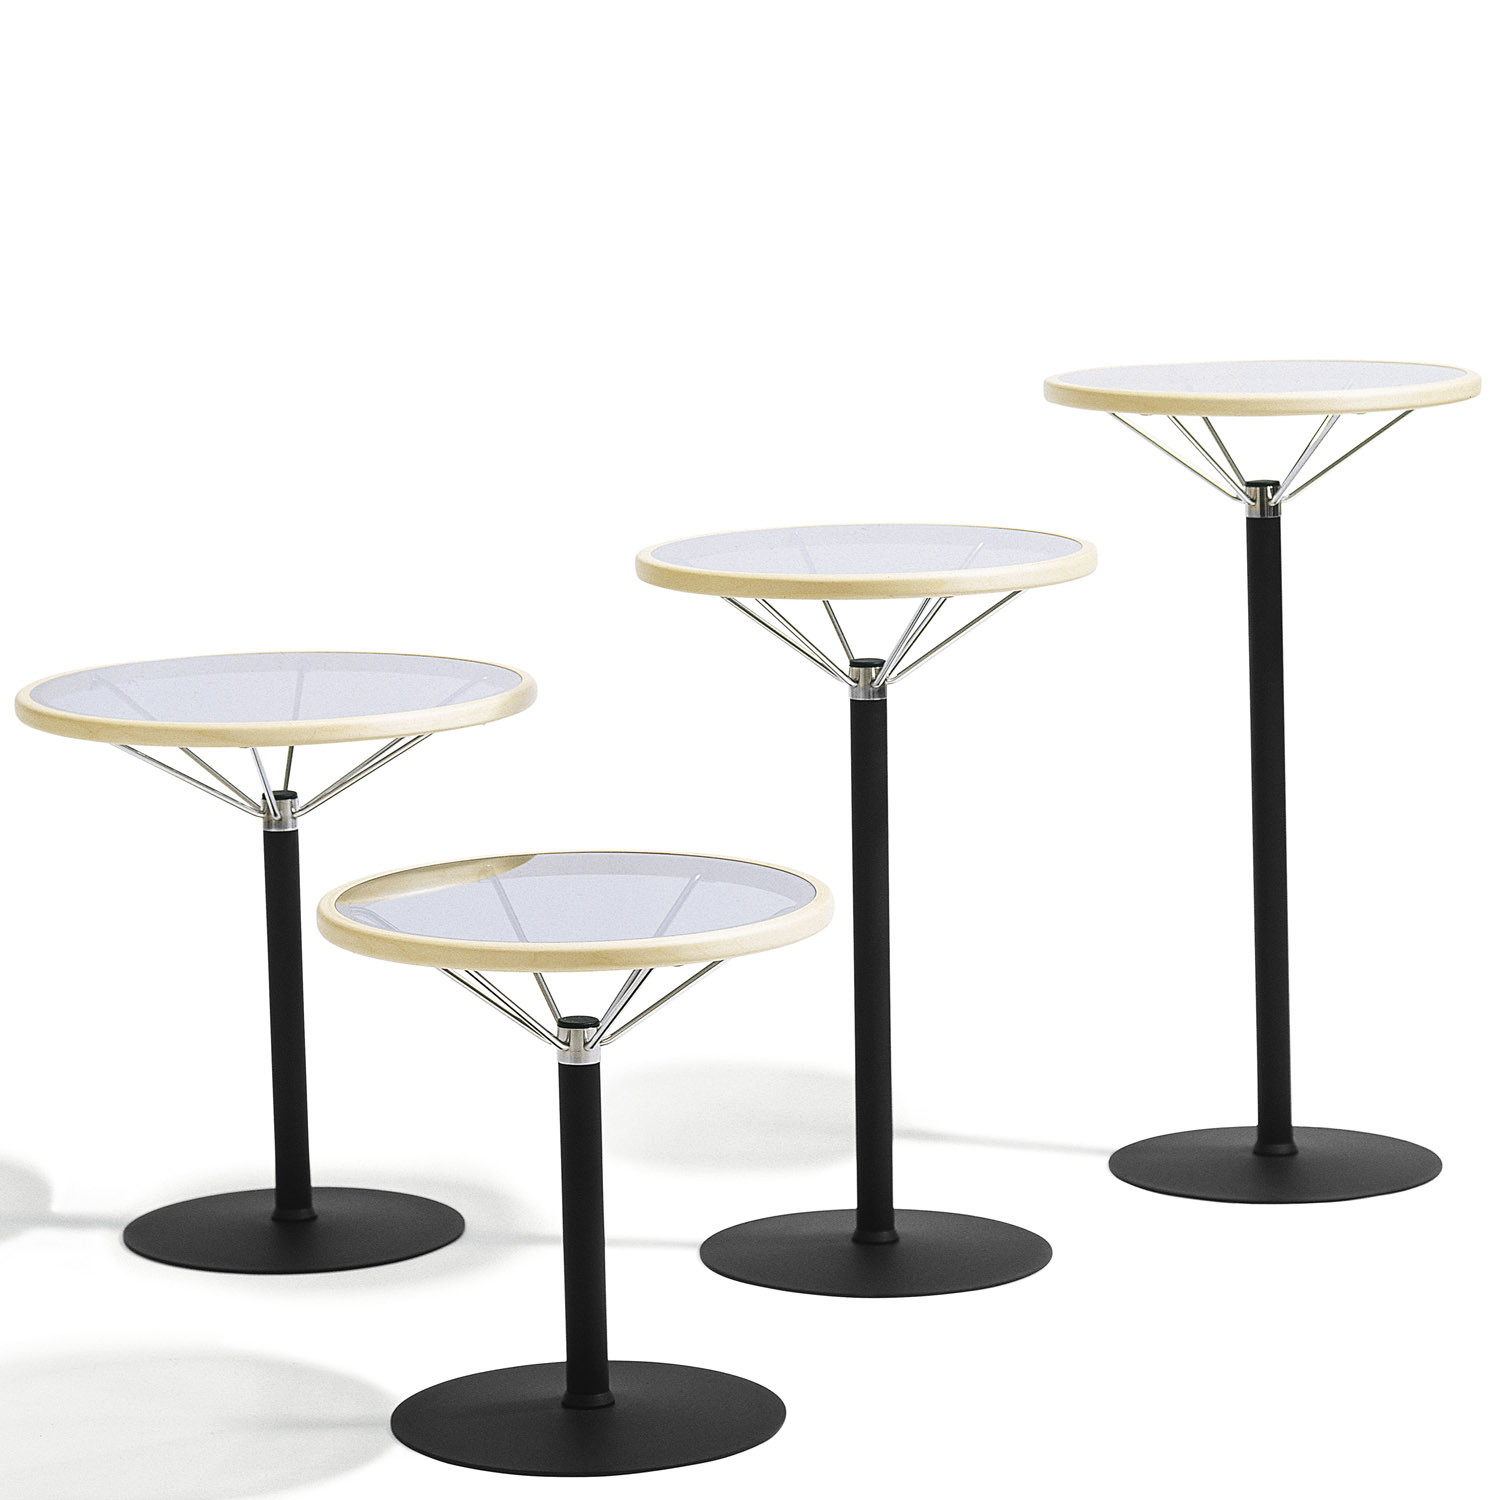 L1 Tables by Börge Lindau